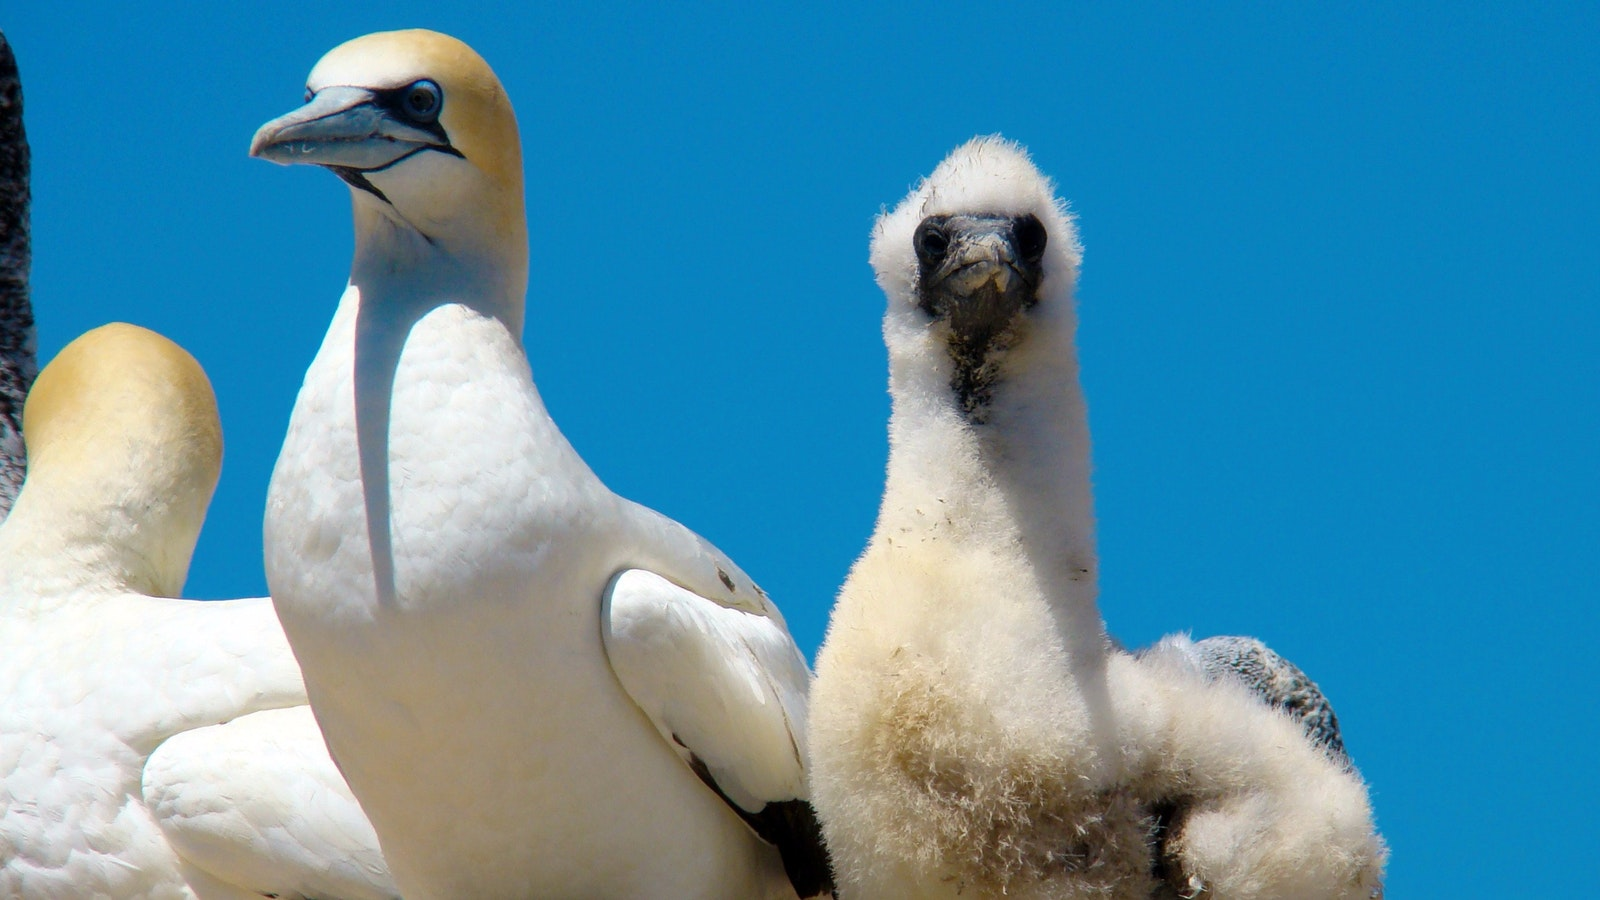 Australasian Gannet with Chick